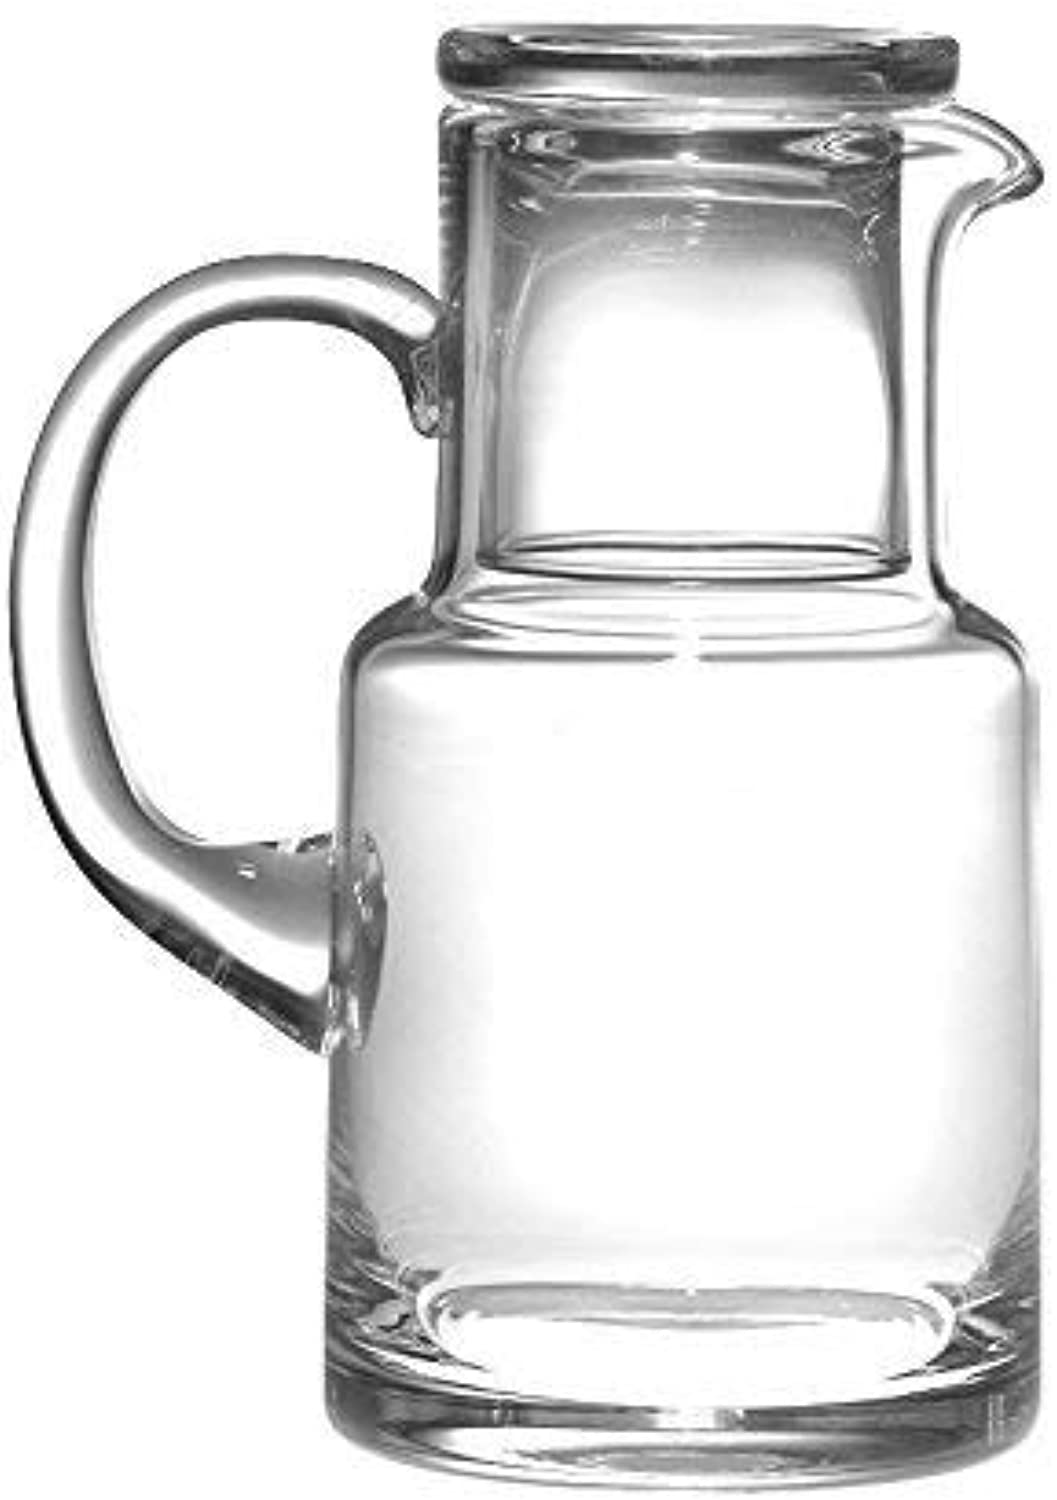 Barski - European Quality Glass - 2 Piece Water Set -Bedside Night Water Carafe   Desktop Water Carafe - With Handle - With Tumbler - Carafe is 20 oz. - Made in Europe